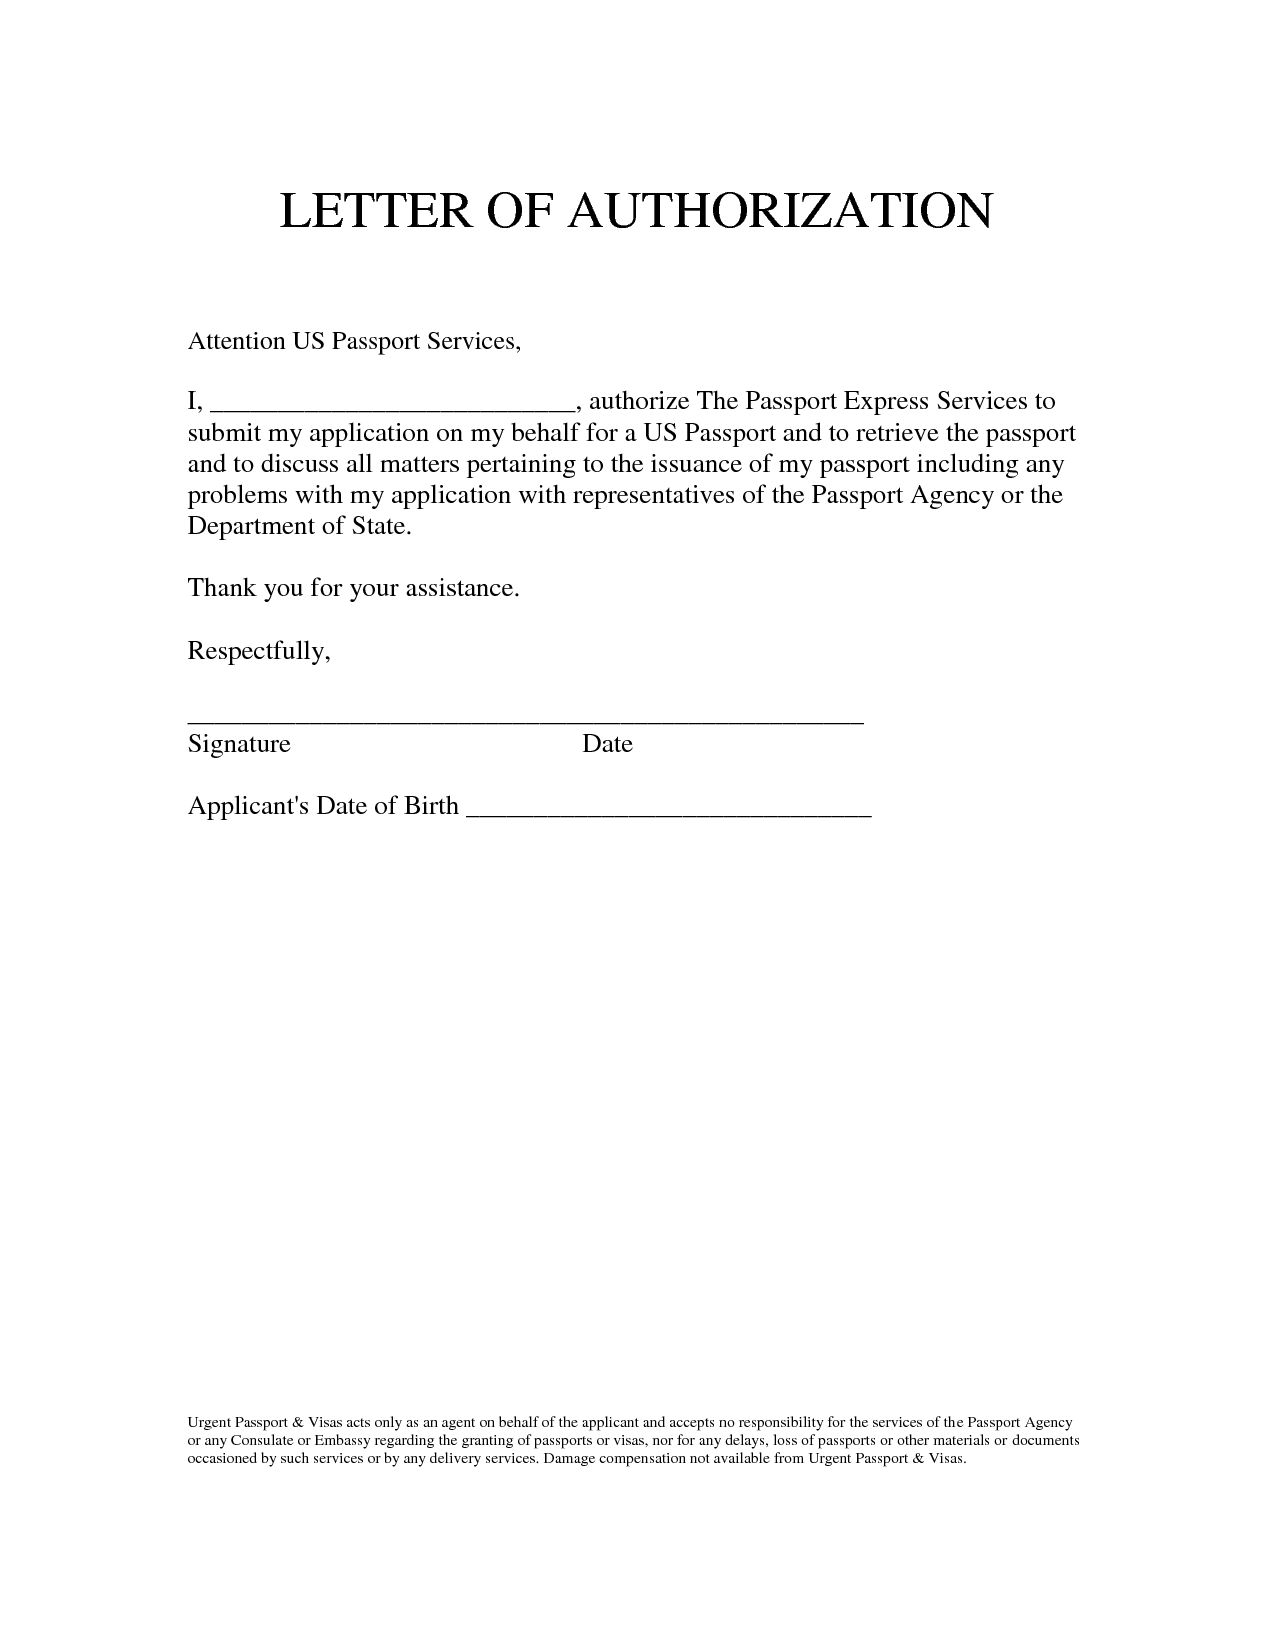 Bank account authorization letter sample format for cheque book bank account authorization letter sample format for cheque book spiritdancerdesigns Image collections